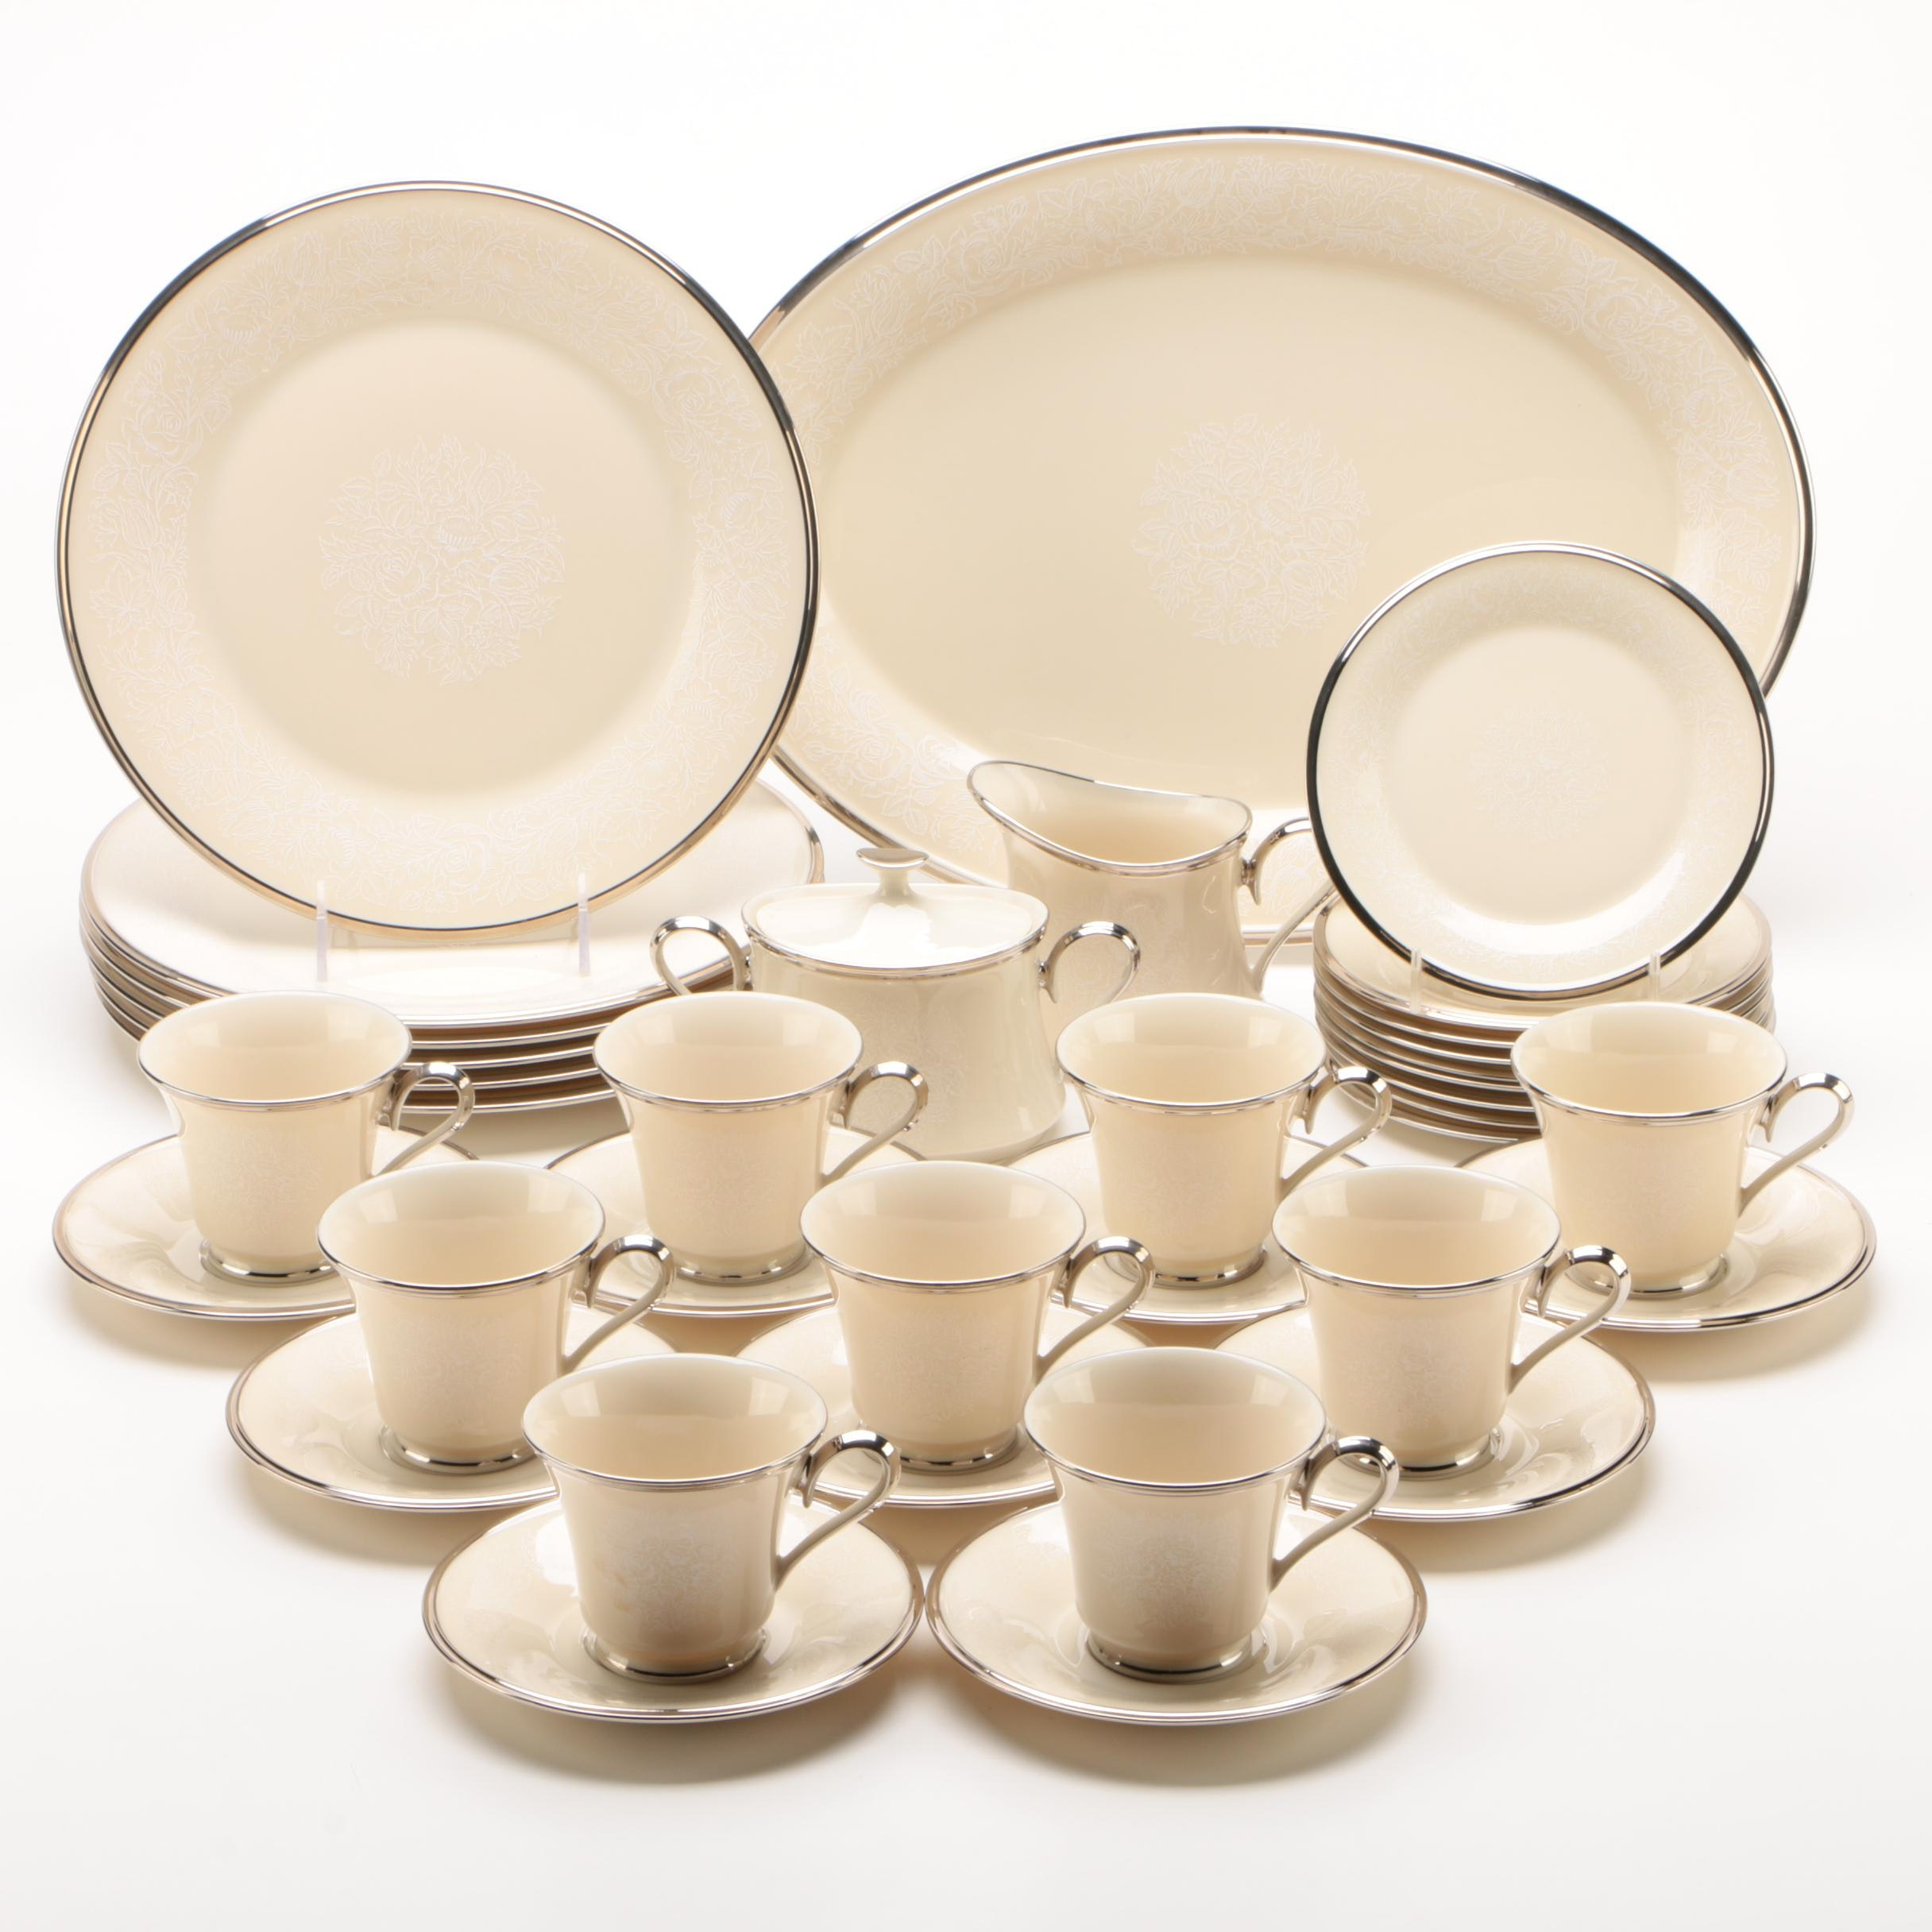 "Lenox ""Moonspun"" Bone China Dinnerware, Mid/Late 20th Century"